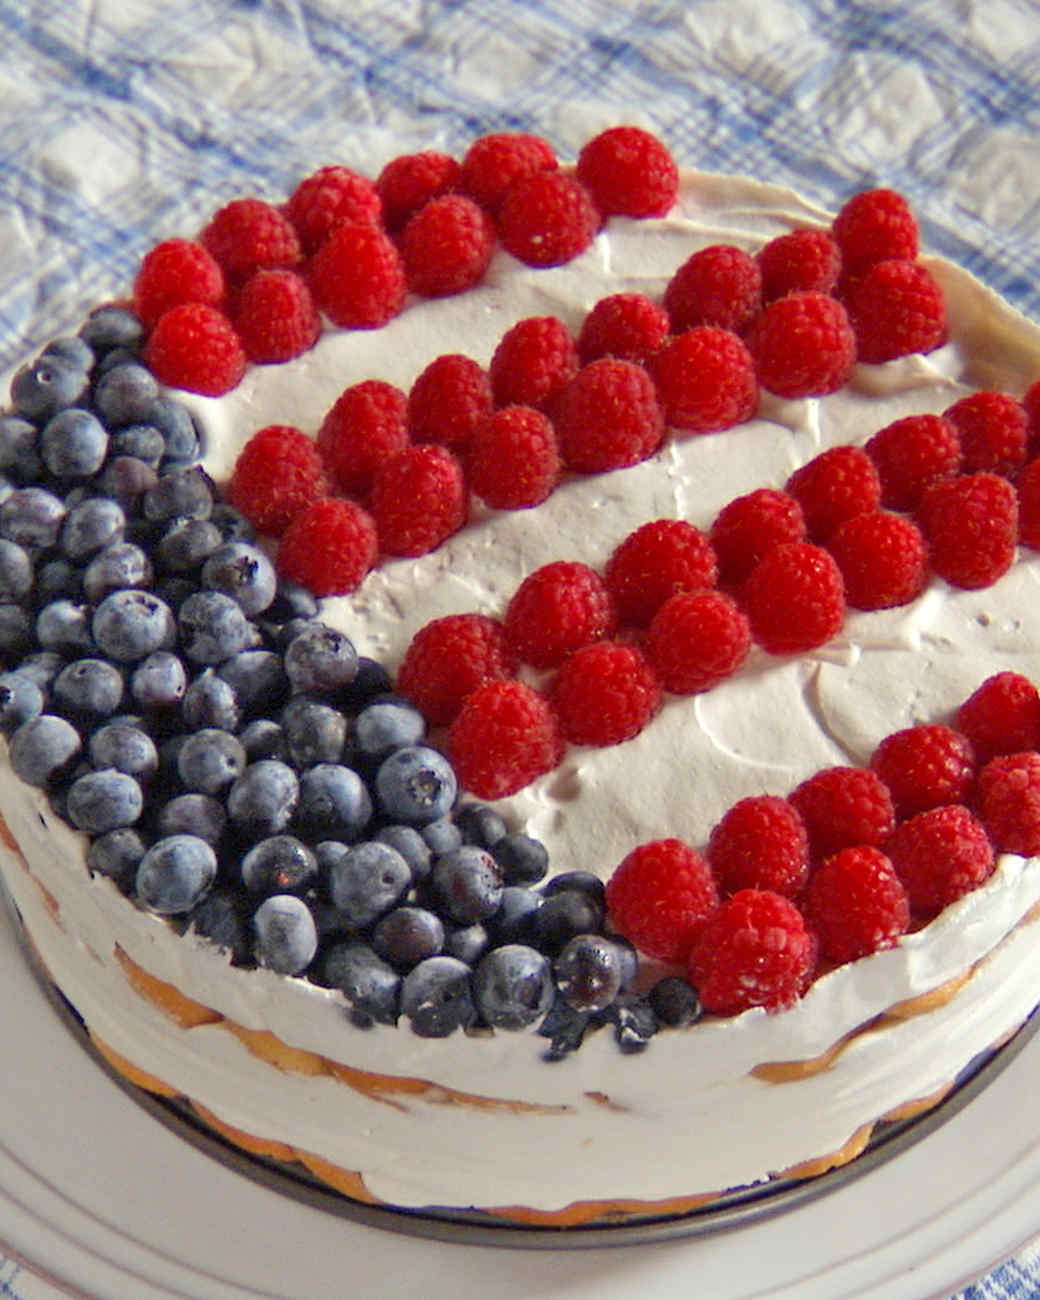 Independence Icebox Cake Recipe & Video | Martha Stewart